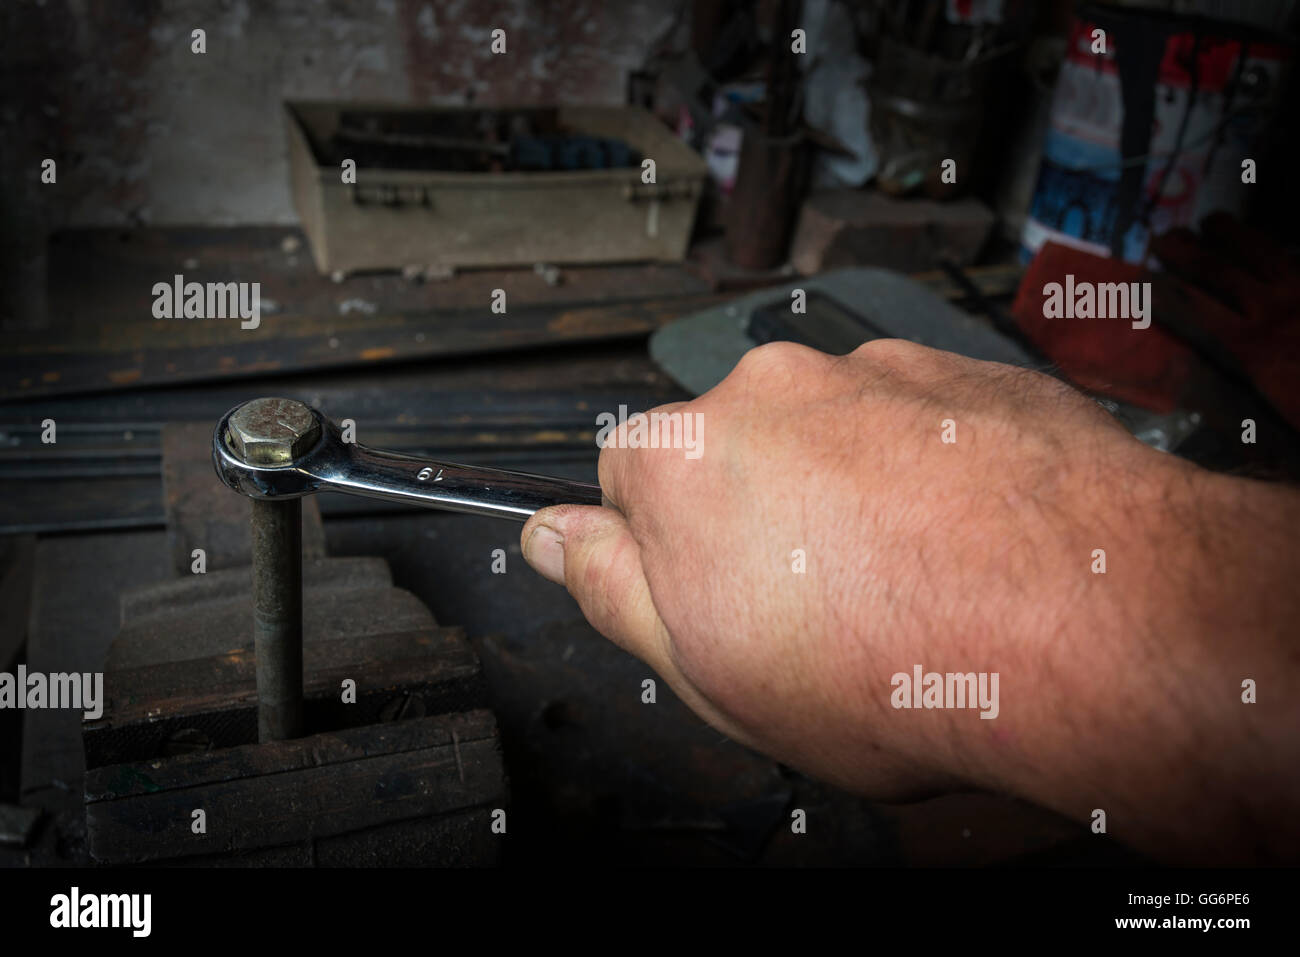 worker hand tightening or loosening a nut of a rusty bolt with a wrench in old workshop - Stock Image